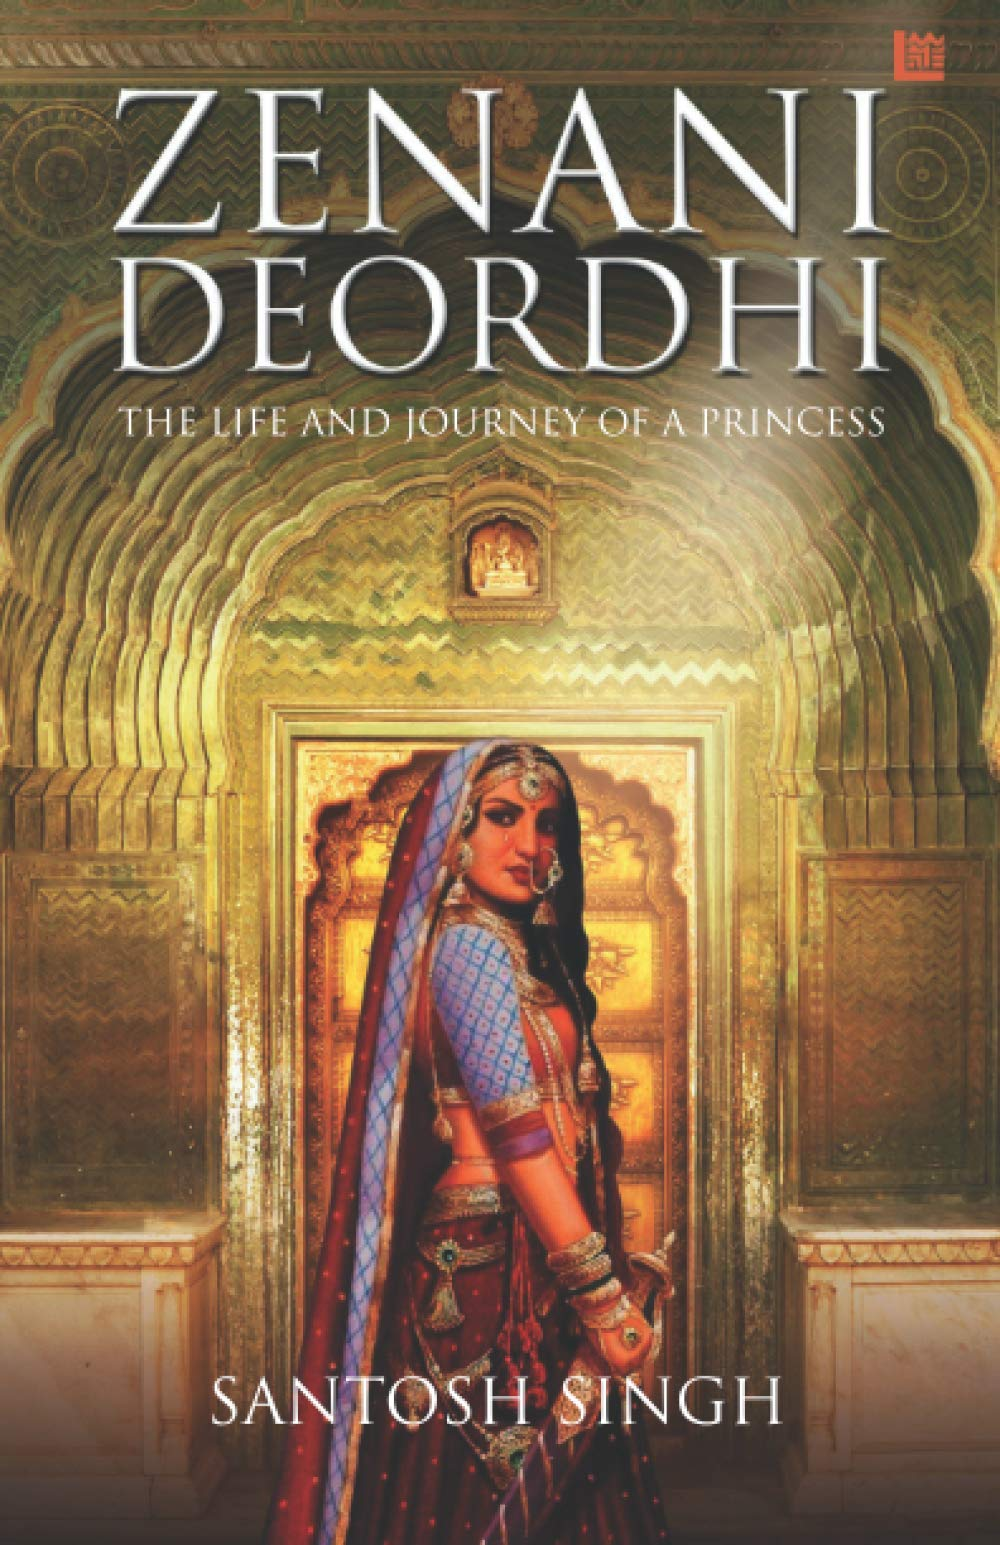 Zenani Deordhi - The Life and Journey of a Princess by Santosh Singh